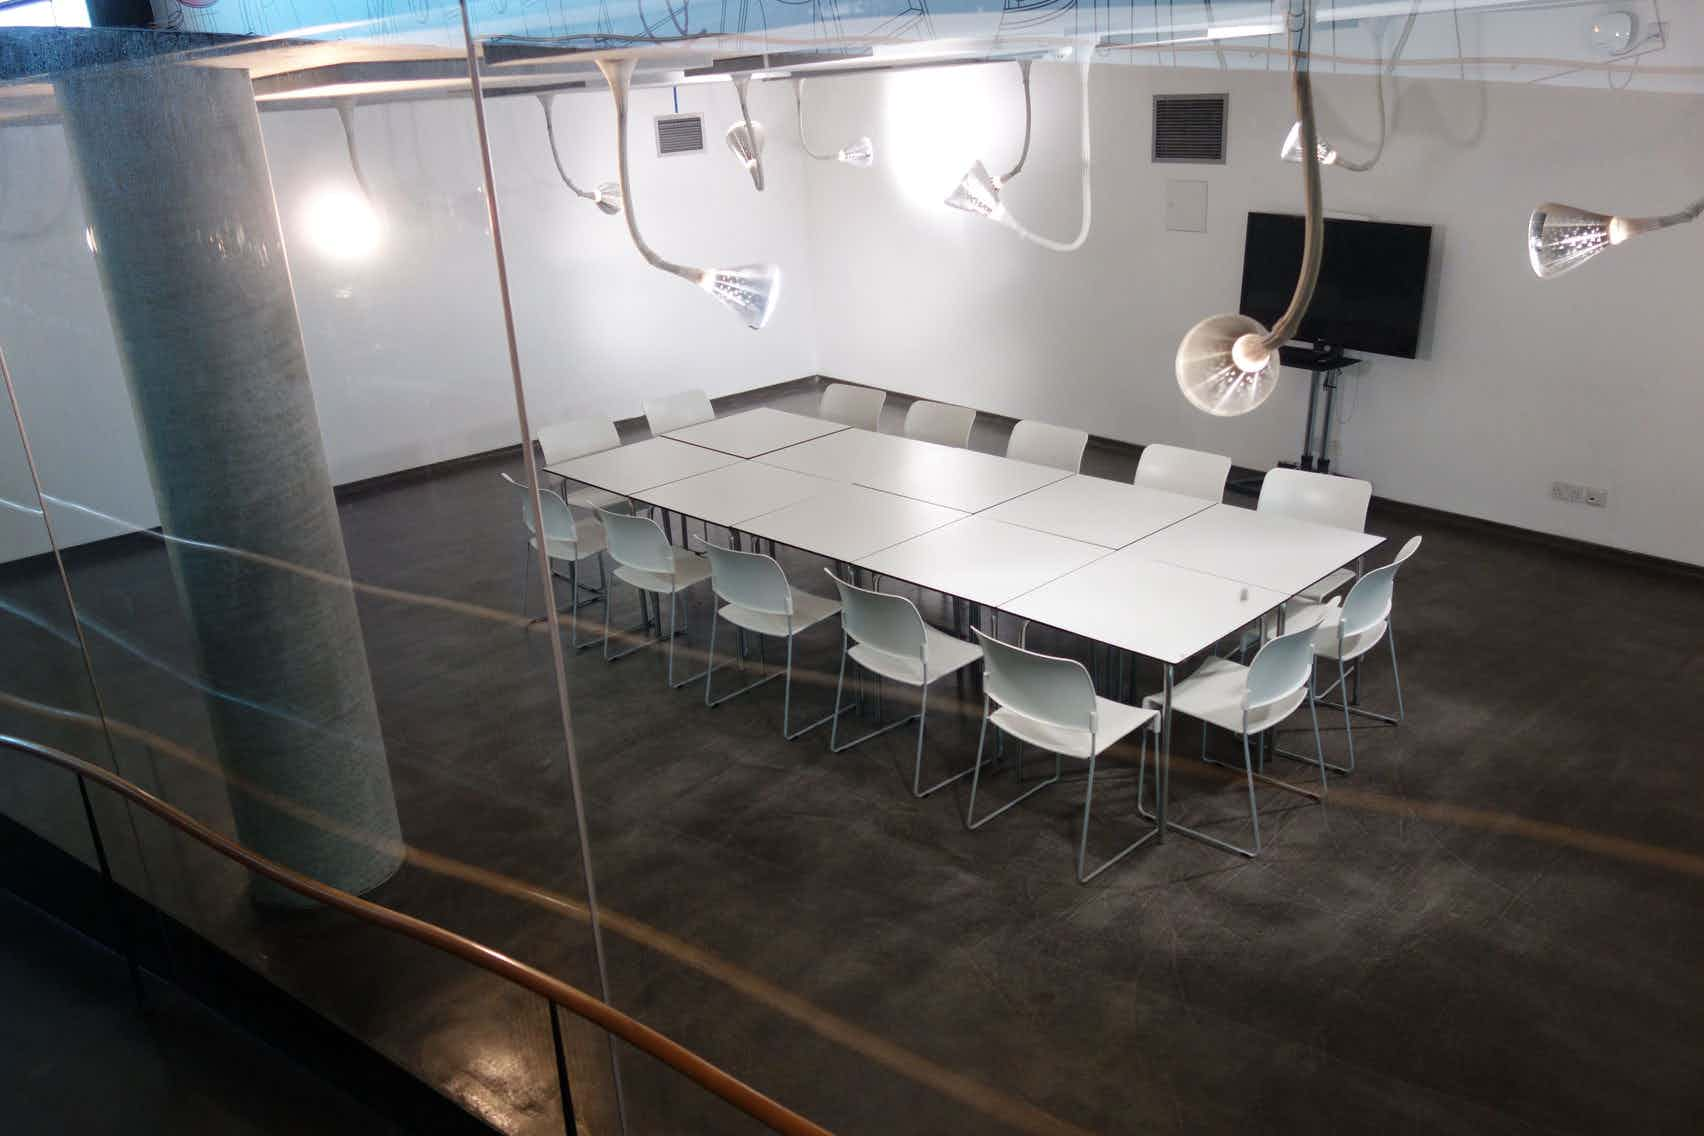 Glass Meeting Room, Laban Building